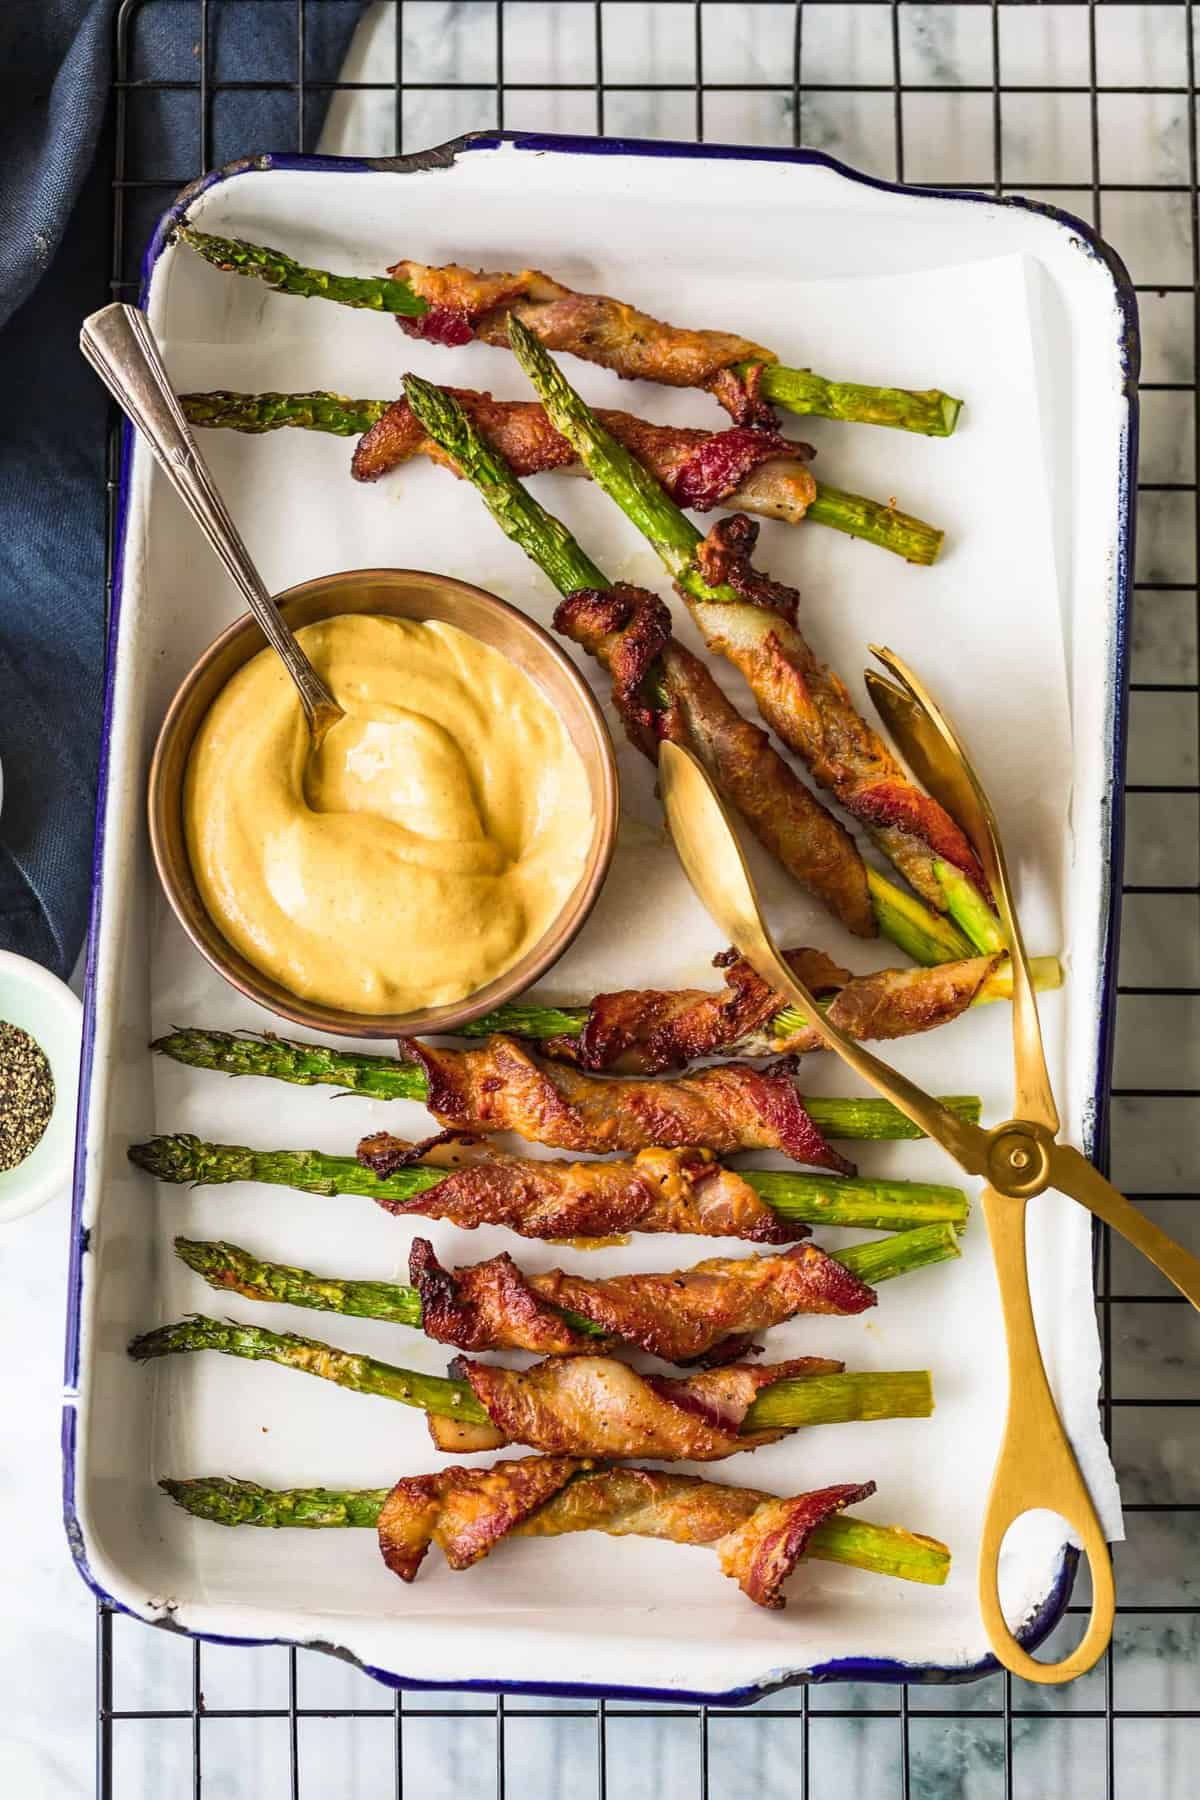 Bacon Wrapped Asparagus served with dijon